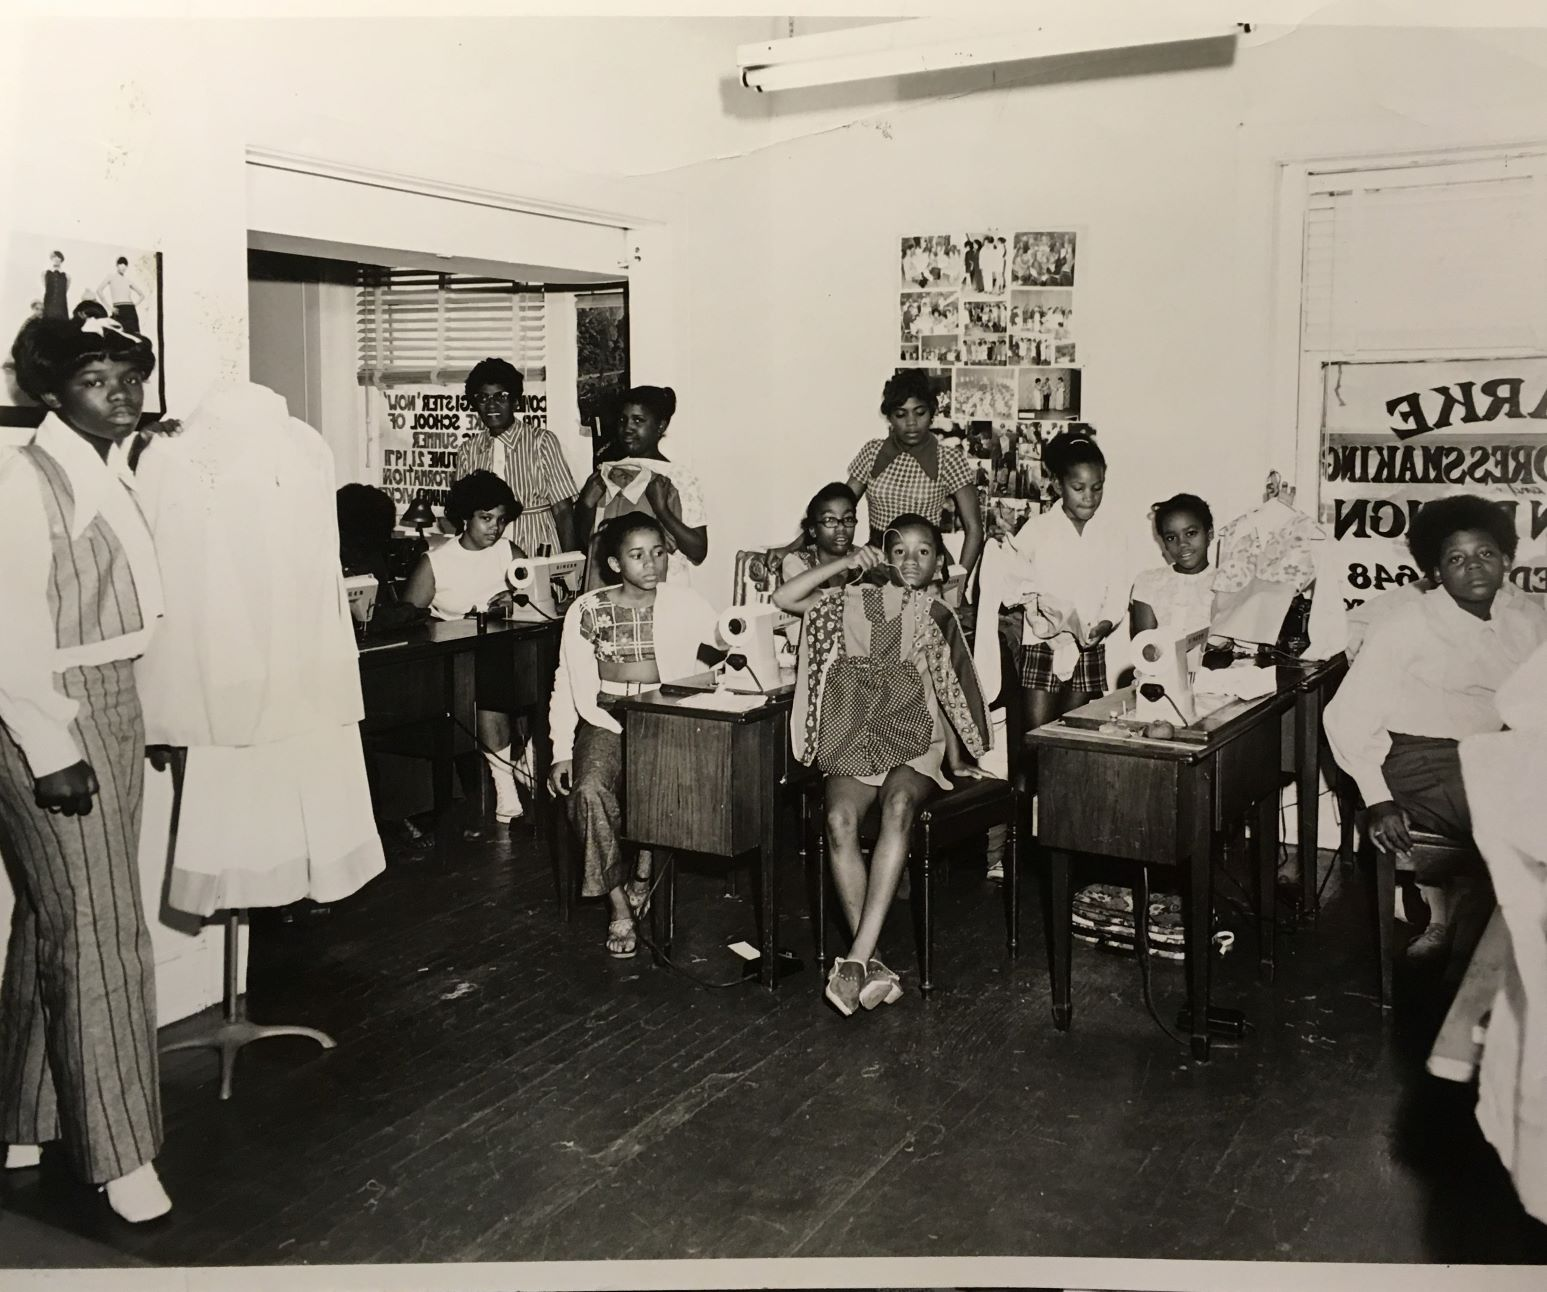 Students at the Clarke School of Dressmaking and Fashion Design